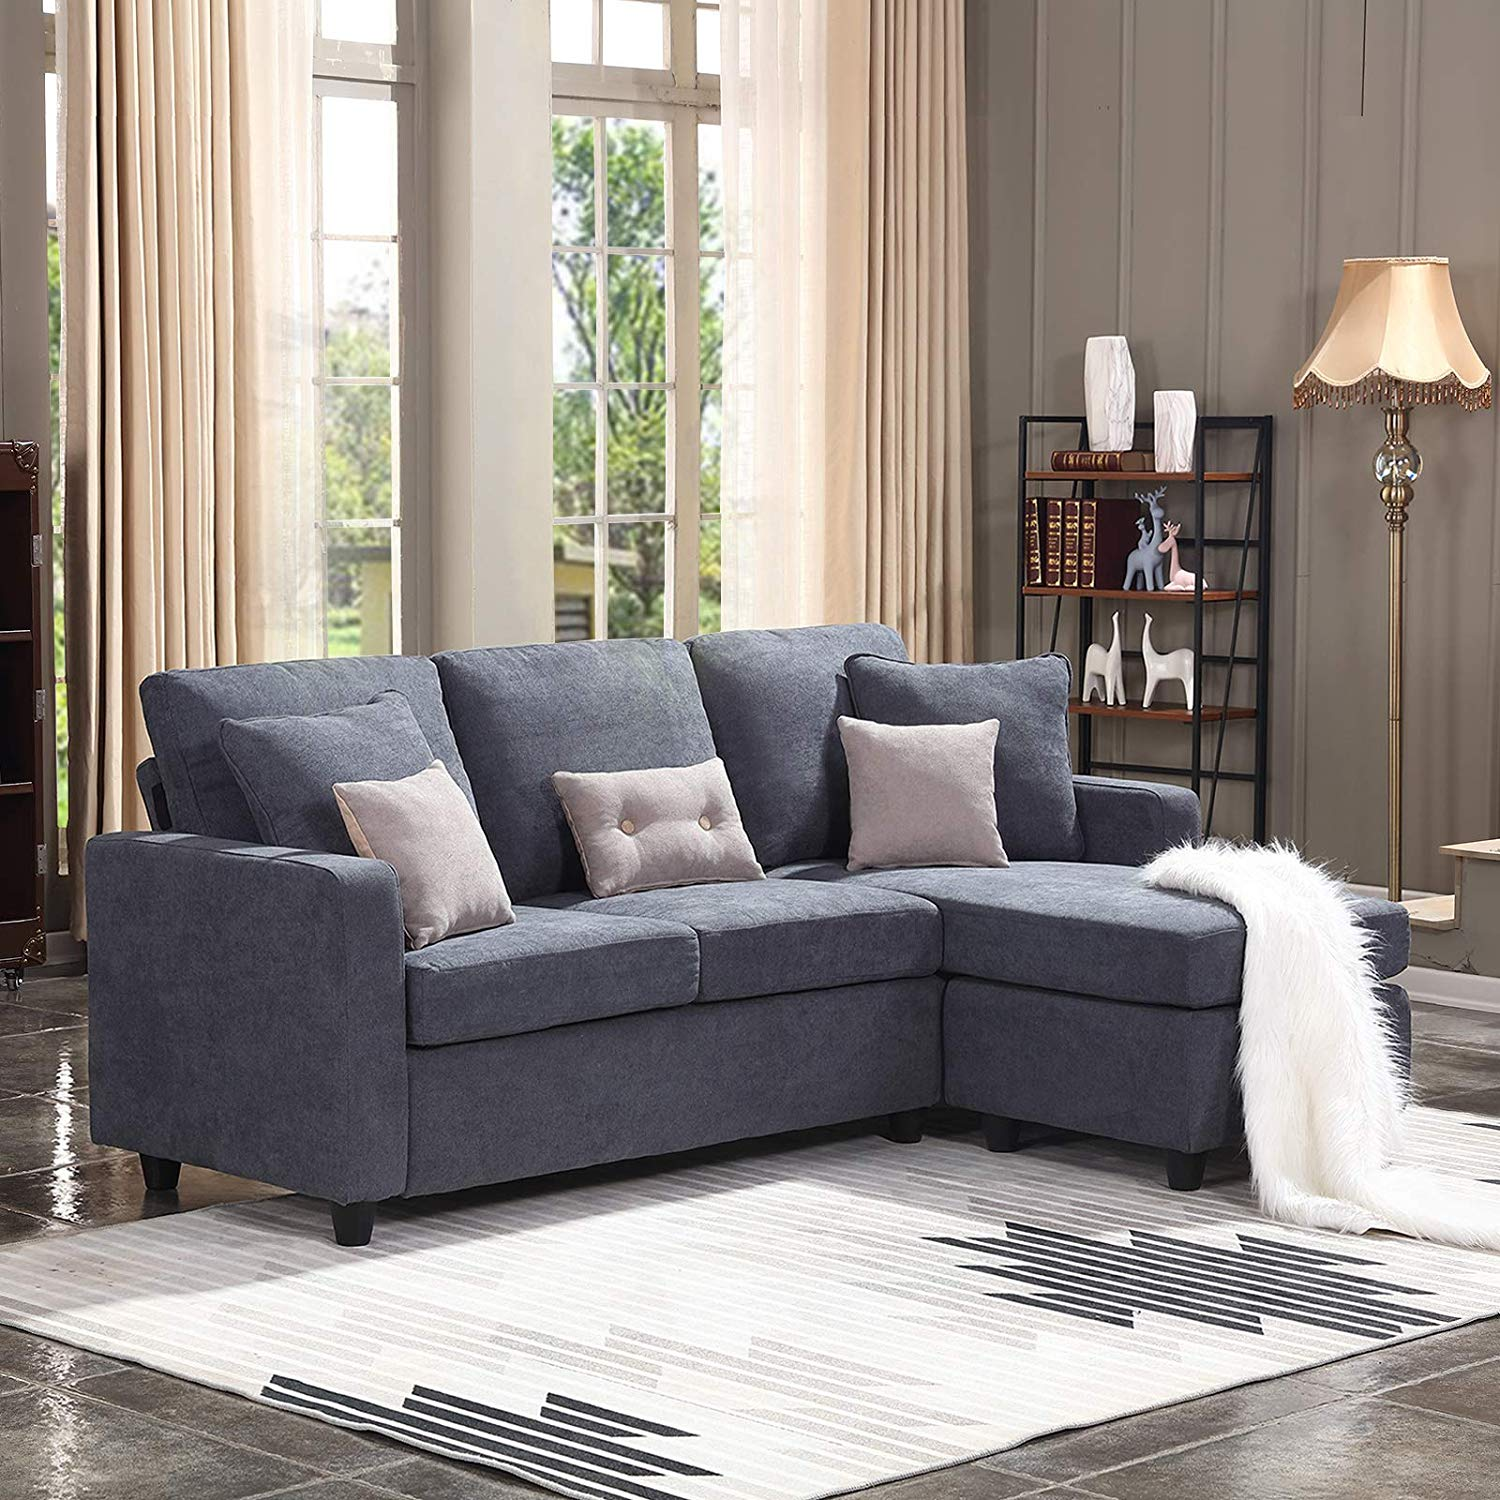 Honbay Convertible Sectional Sofa Couch L Shaped Couch - Couch L